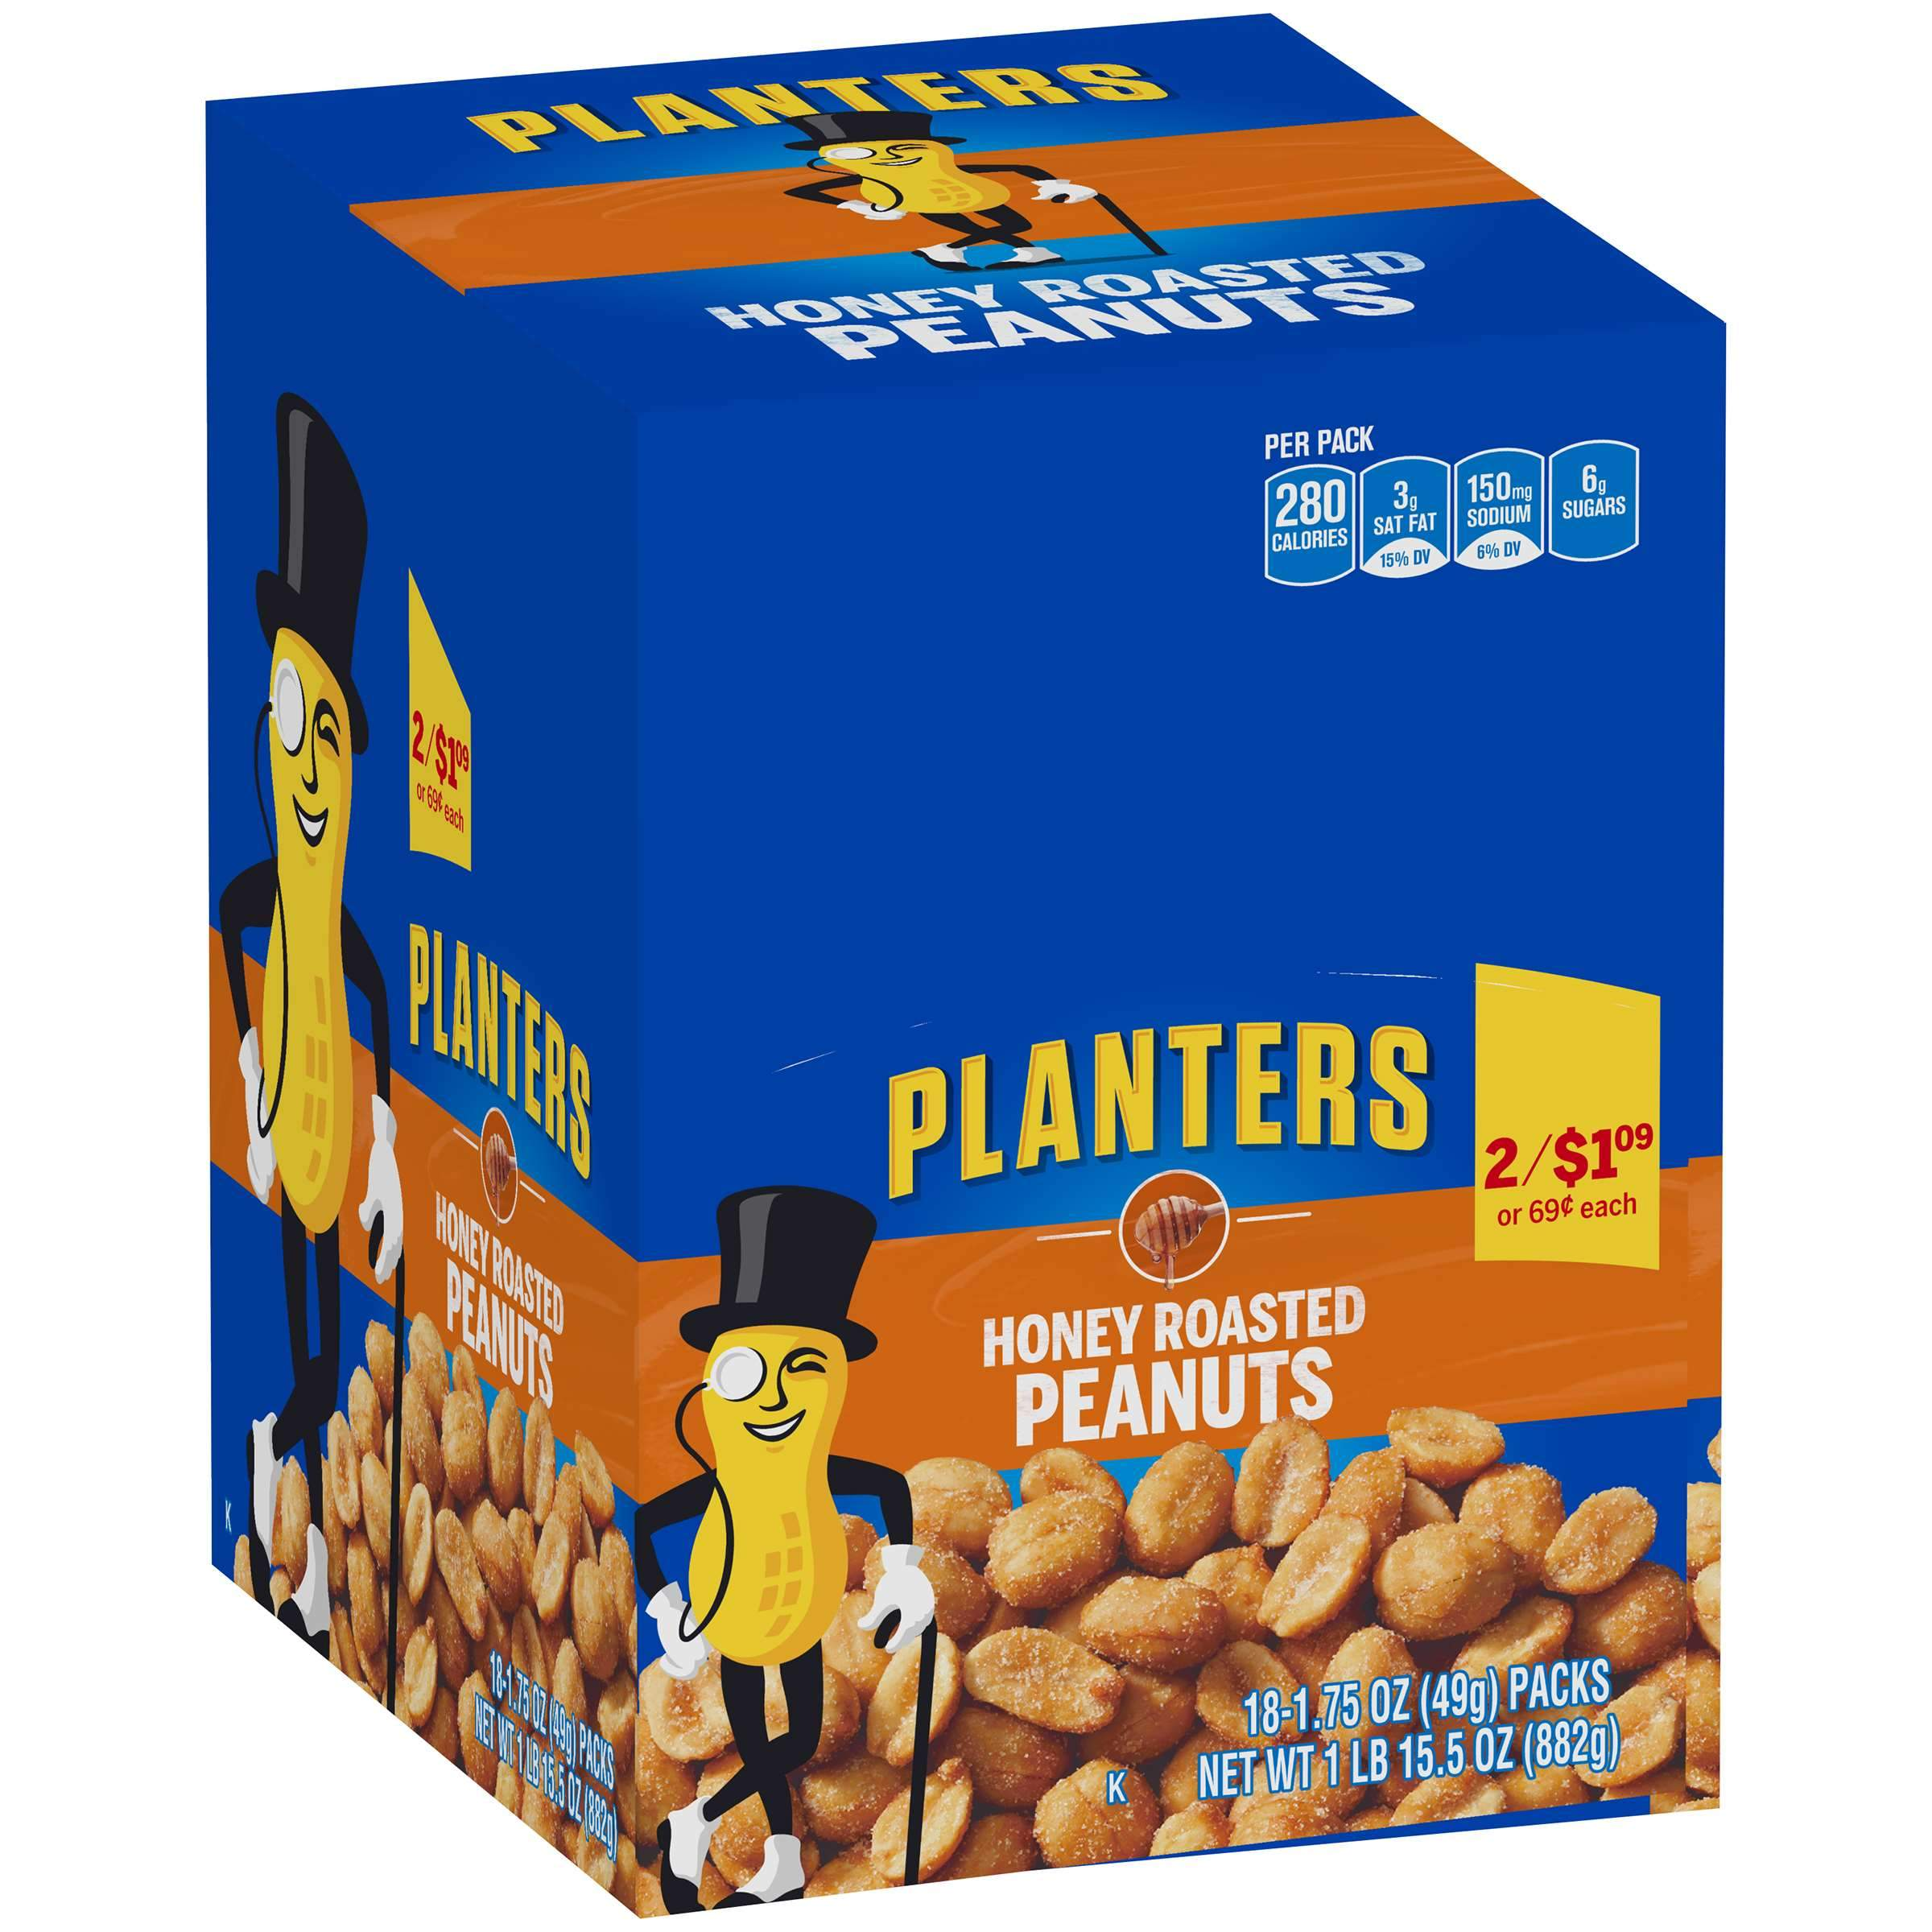 Planters Peanuts Planters Honey Roasted 1.75 Oz-18 Count